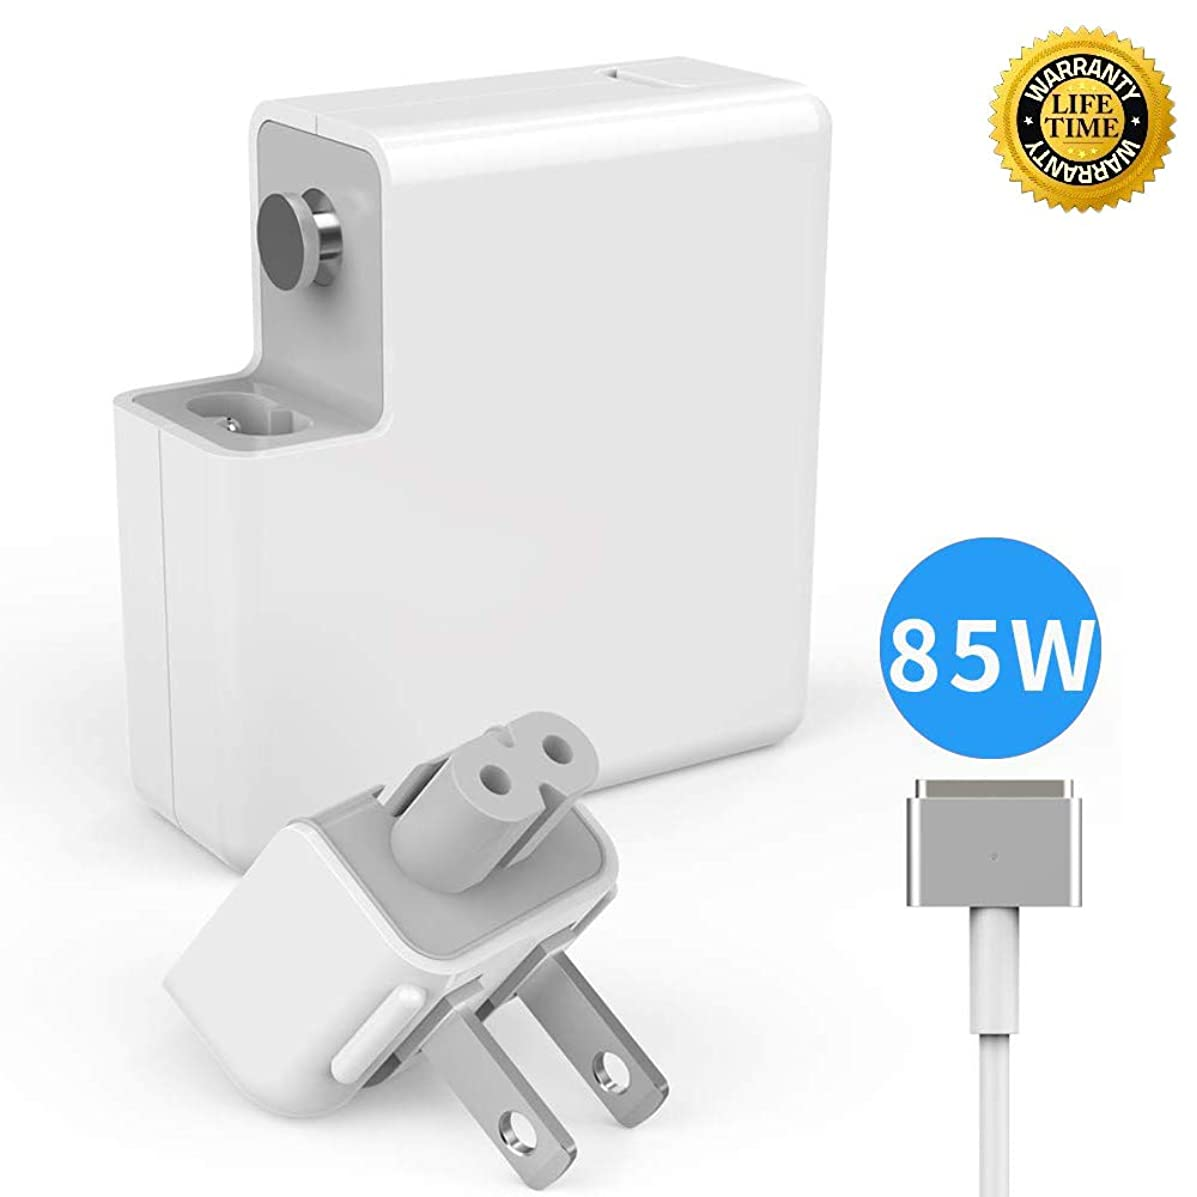 Mac Book Pro Charger, RAYI AC Power T-Tip 85W Magsafe 2 Connector Magnetic Adapter Charger Compatible with Replacement for Mac Book Pro 13 Inch 15 Inch and 17 Inch Retina Display (85T)